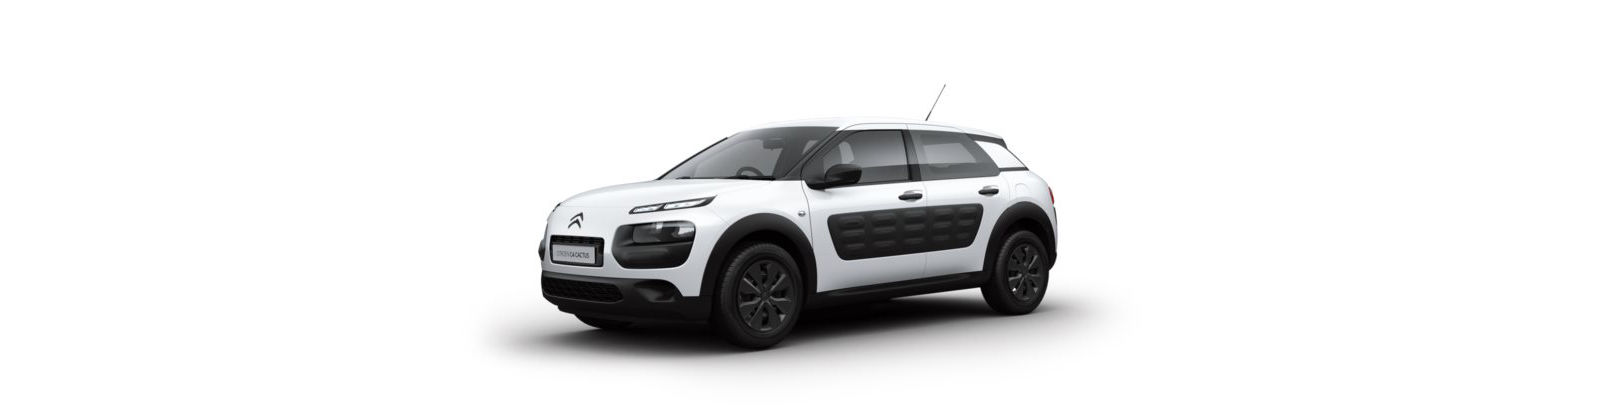 Citroen C4 Cactus Colours Guide And Prices Carwow